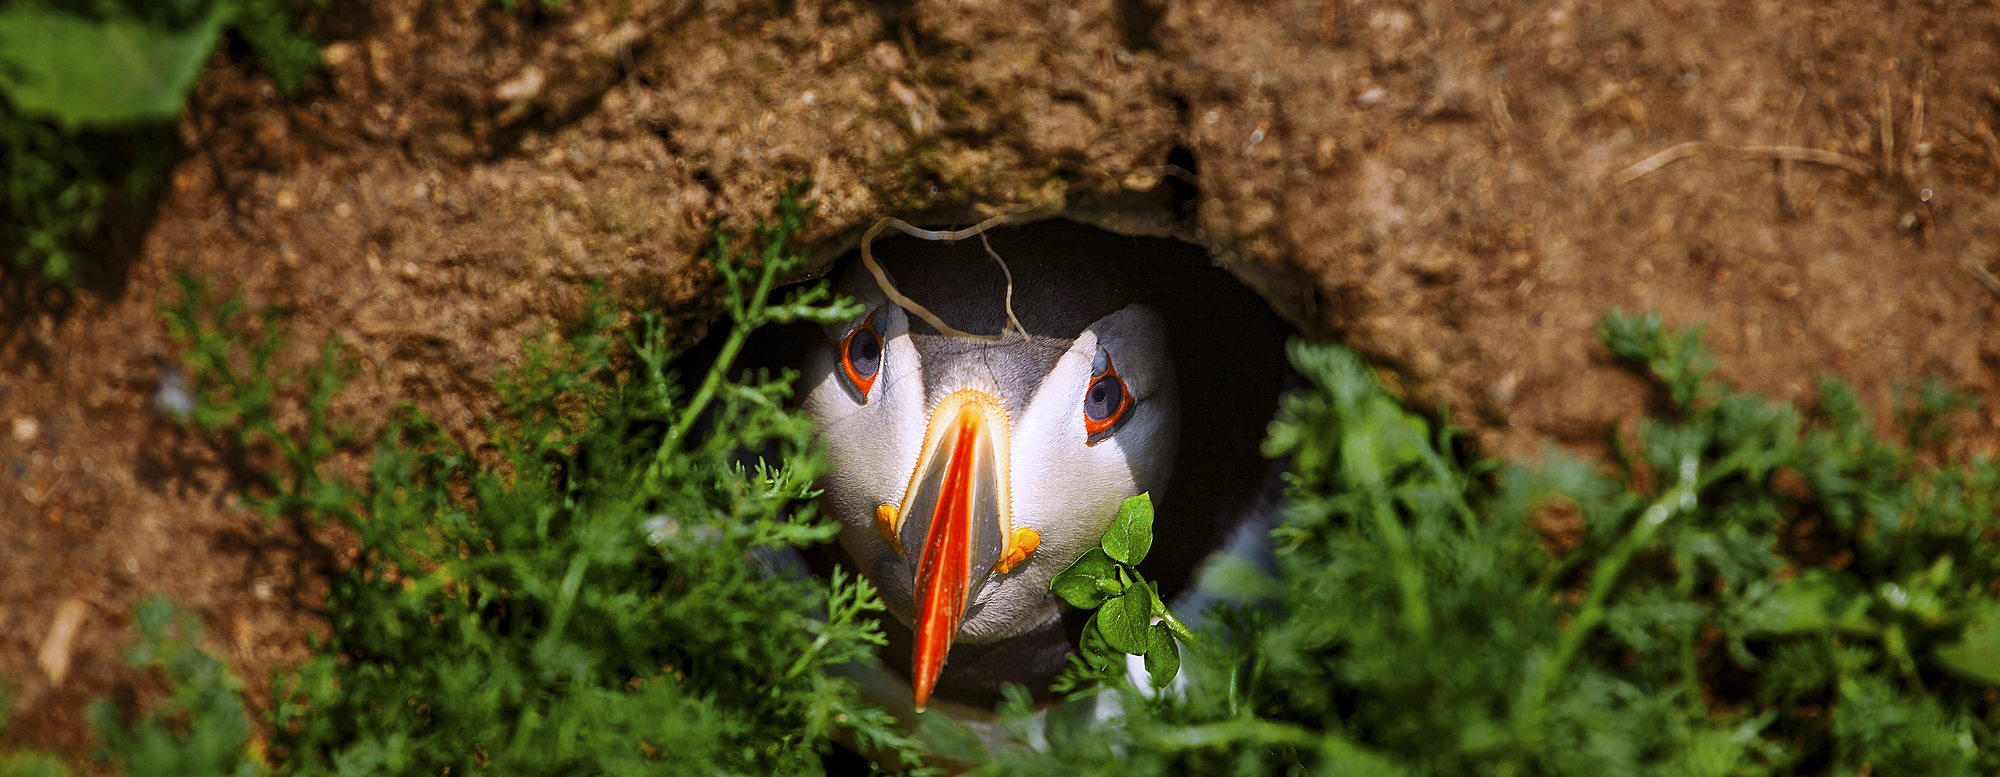 1259-3 ( David Rocaberti ) - An Atlantic Puffin peers out from its burrow on Skomer Island, Wales, United Kingdom, Europe